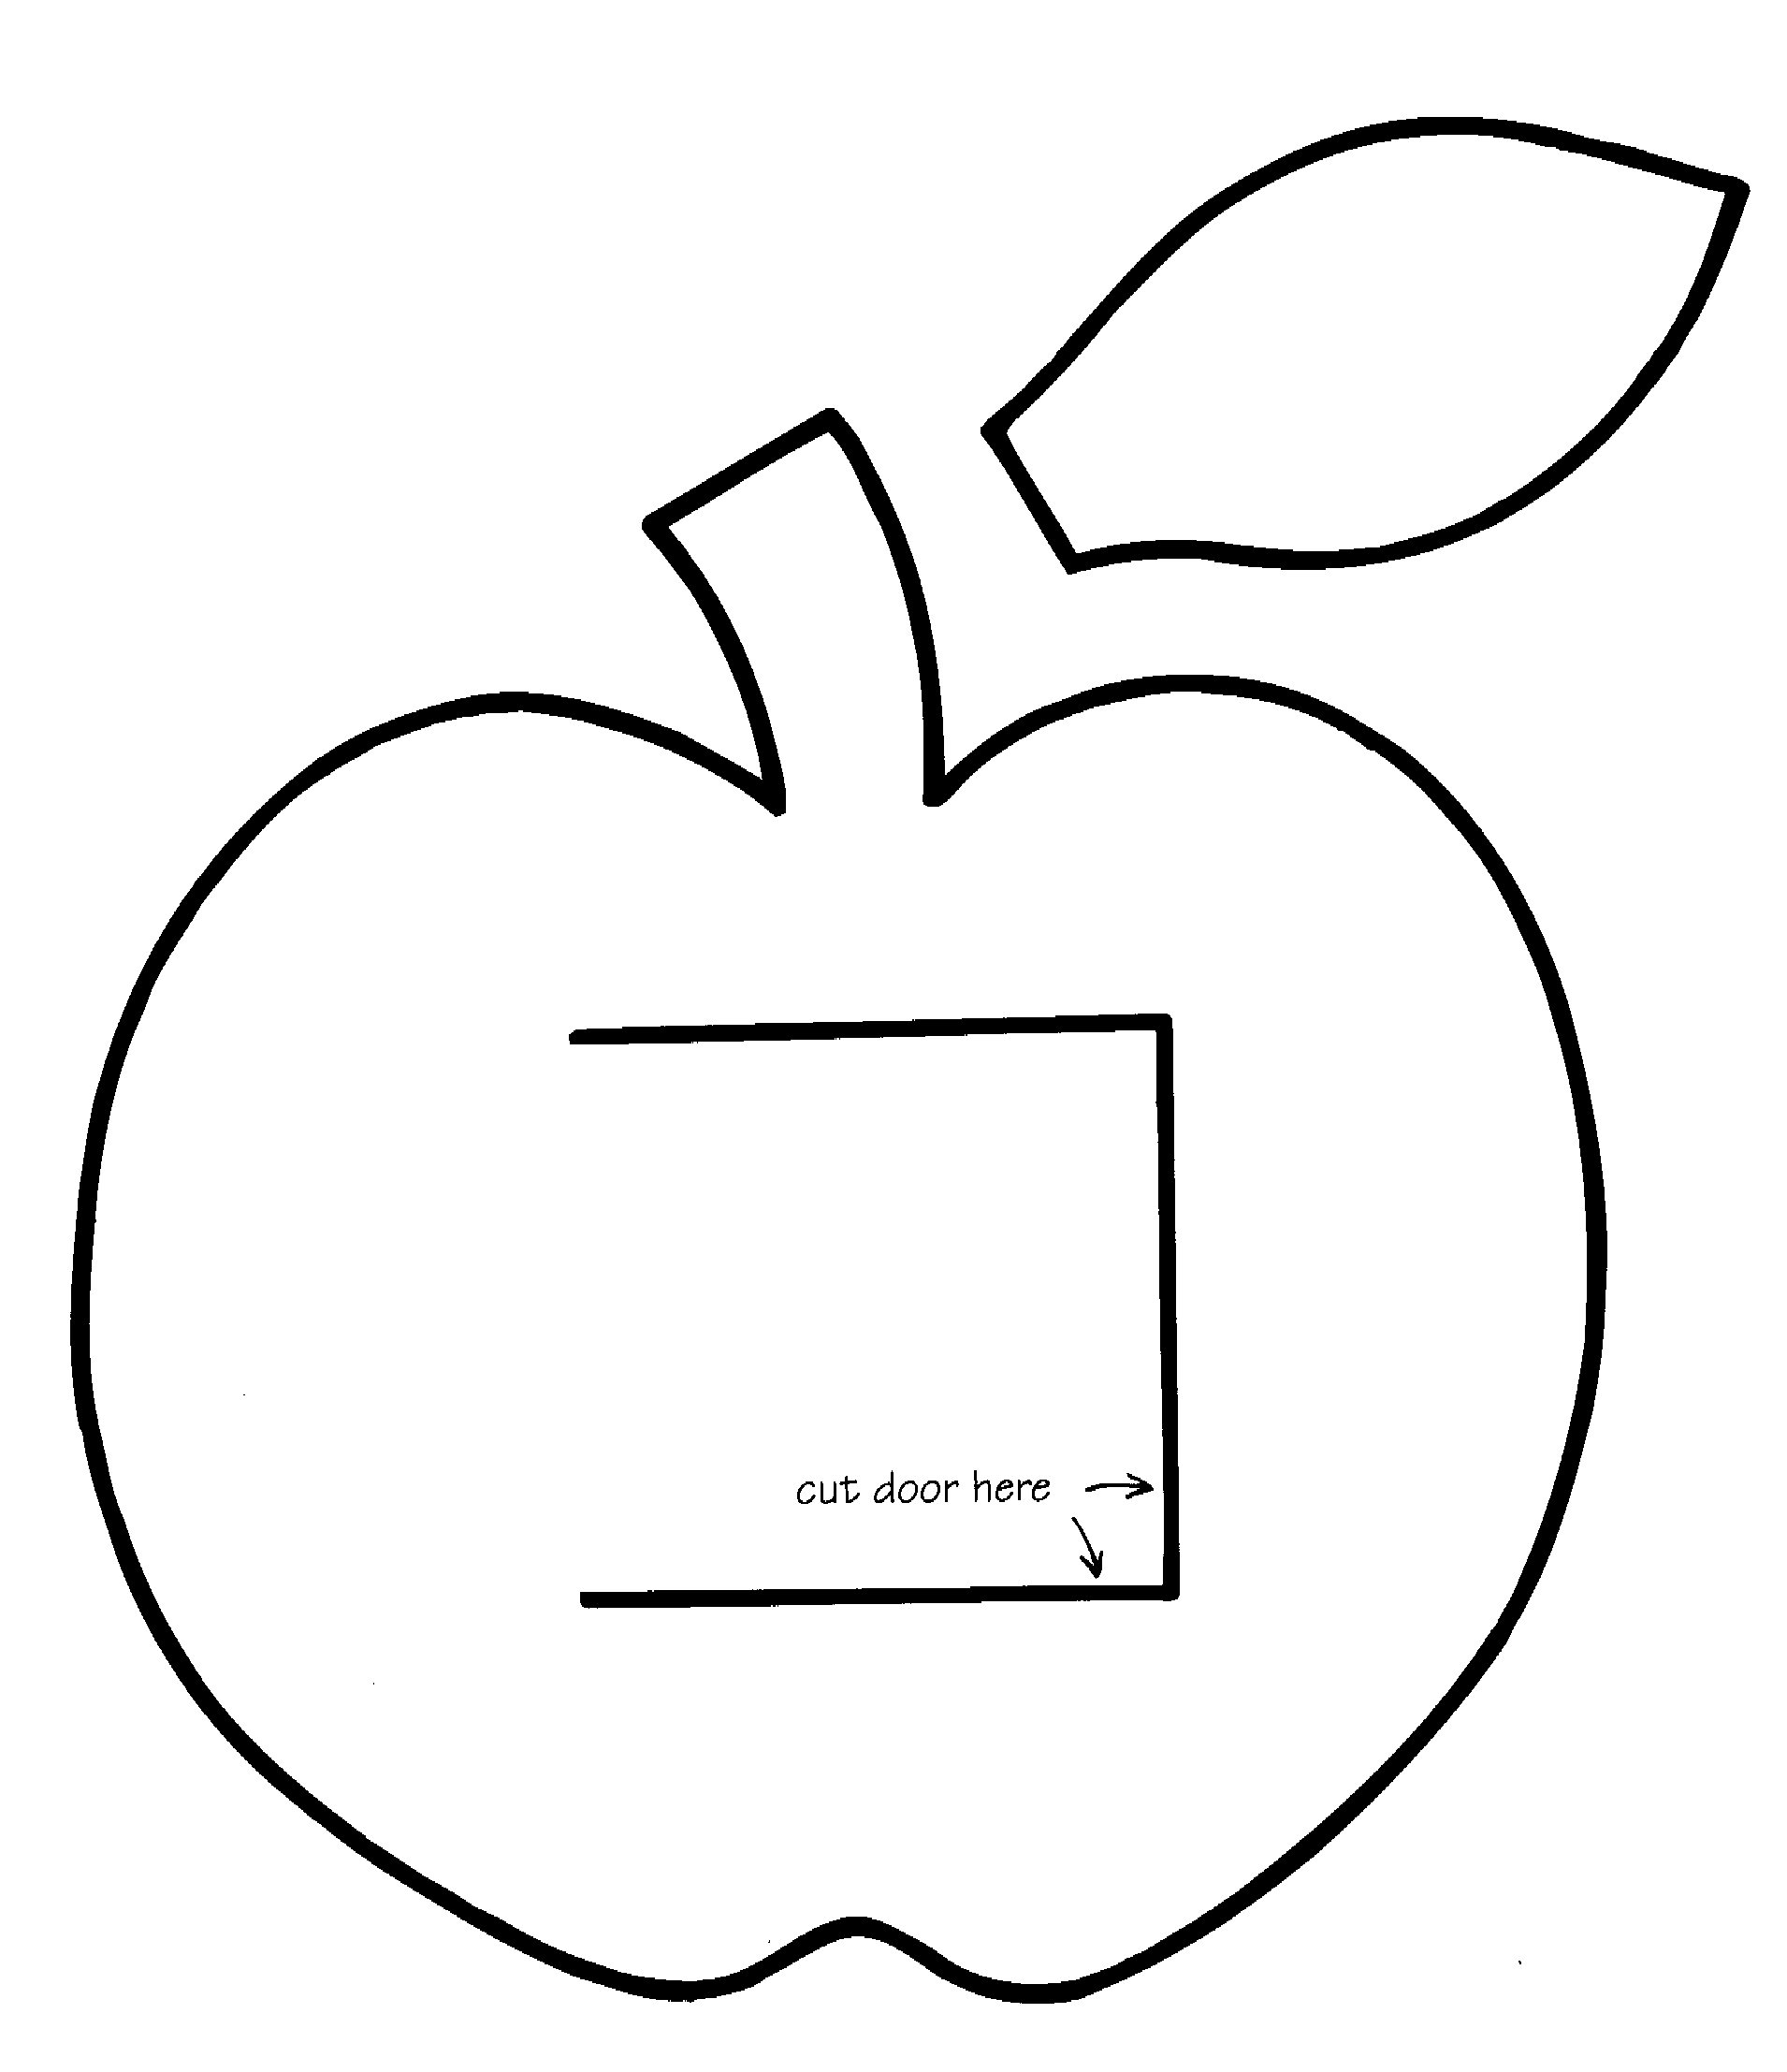 Free Apple Leaf Template Download Free Clip Art Free